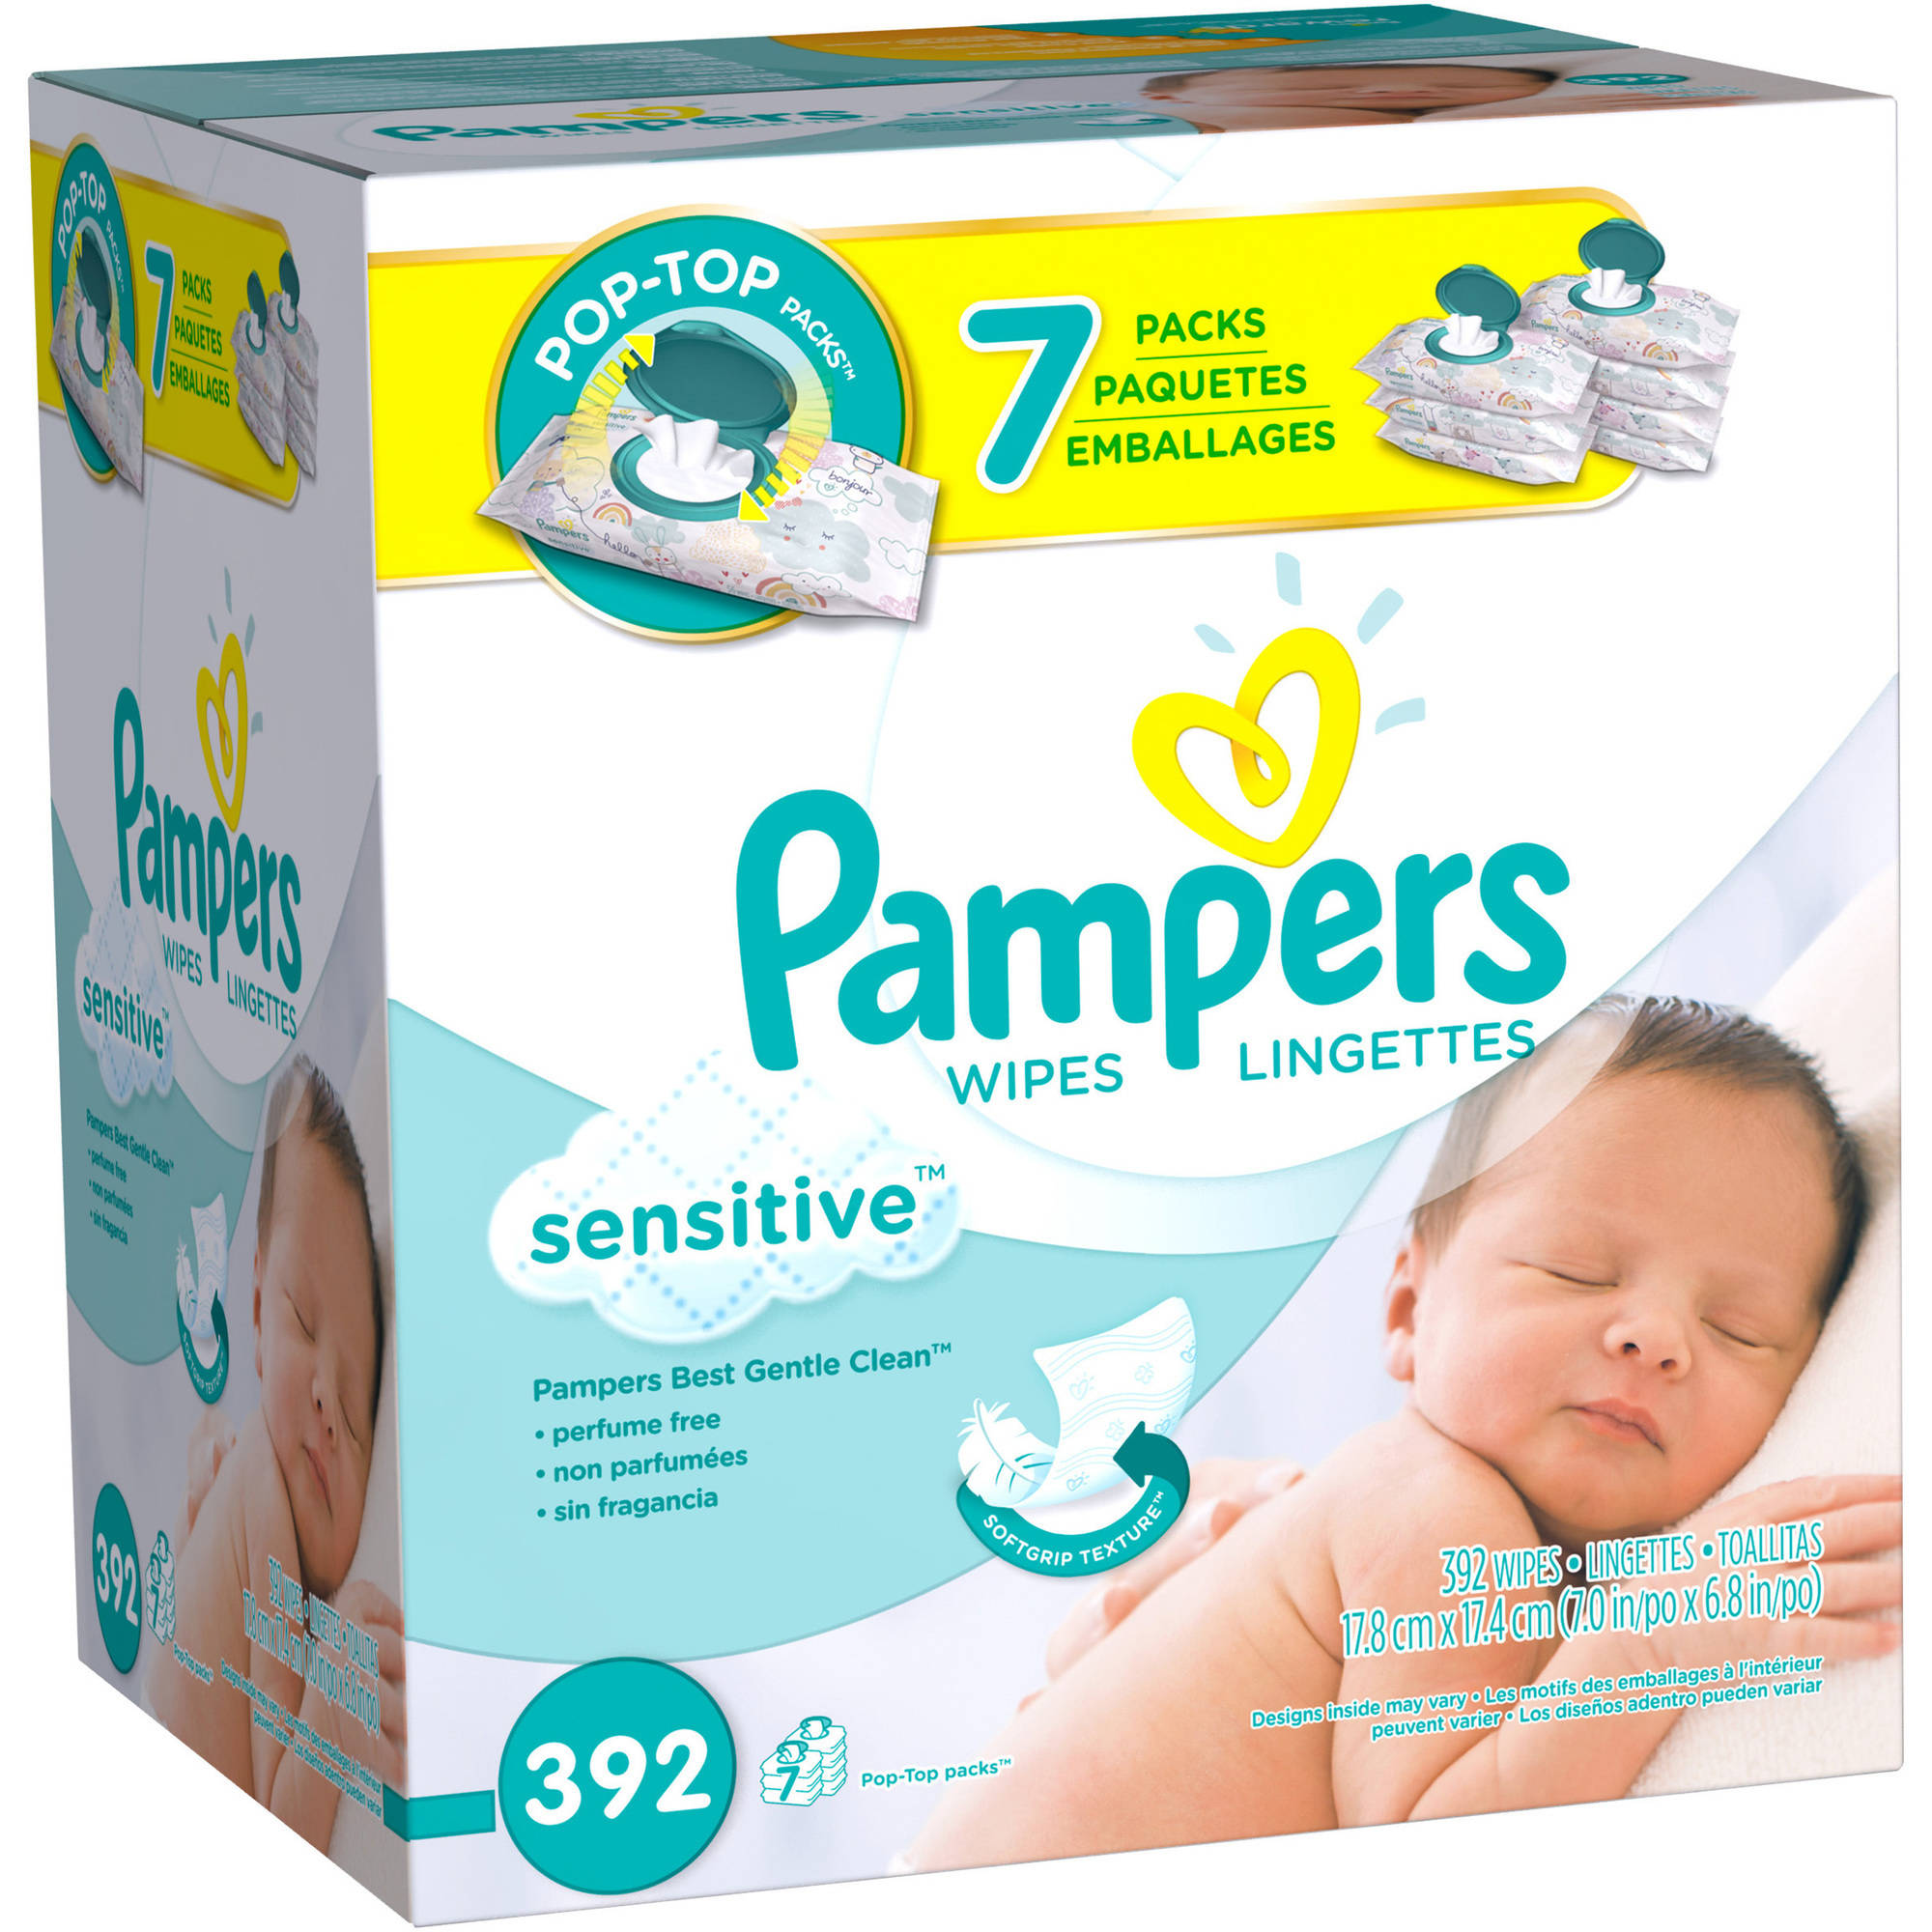 Pampers Sensitive Wipes, Unscented, 7 packs of 56 (392 count)